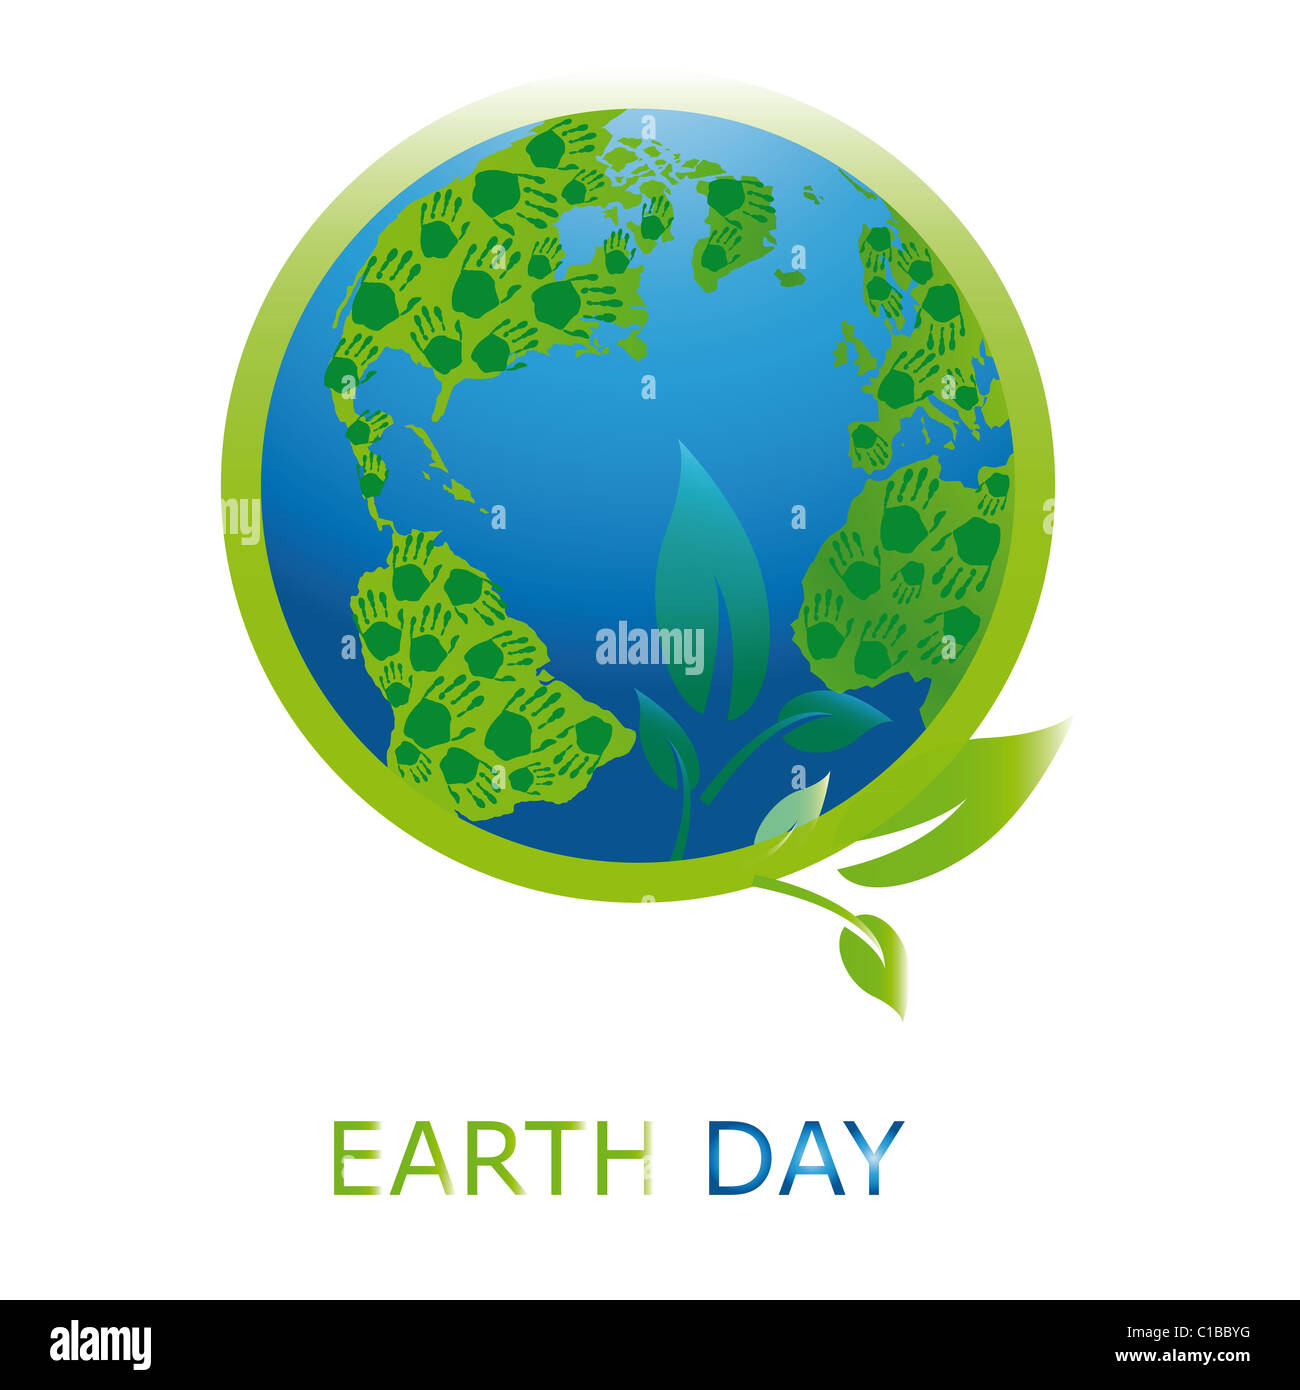 Planet symbol on Earth Day - Stock Image